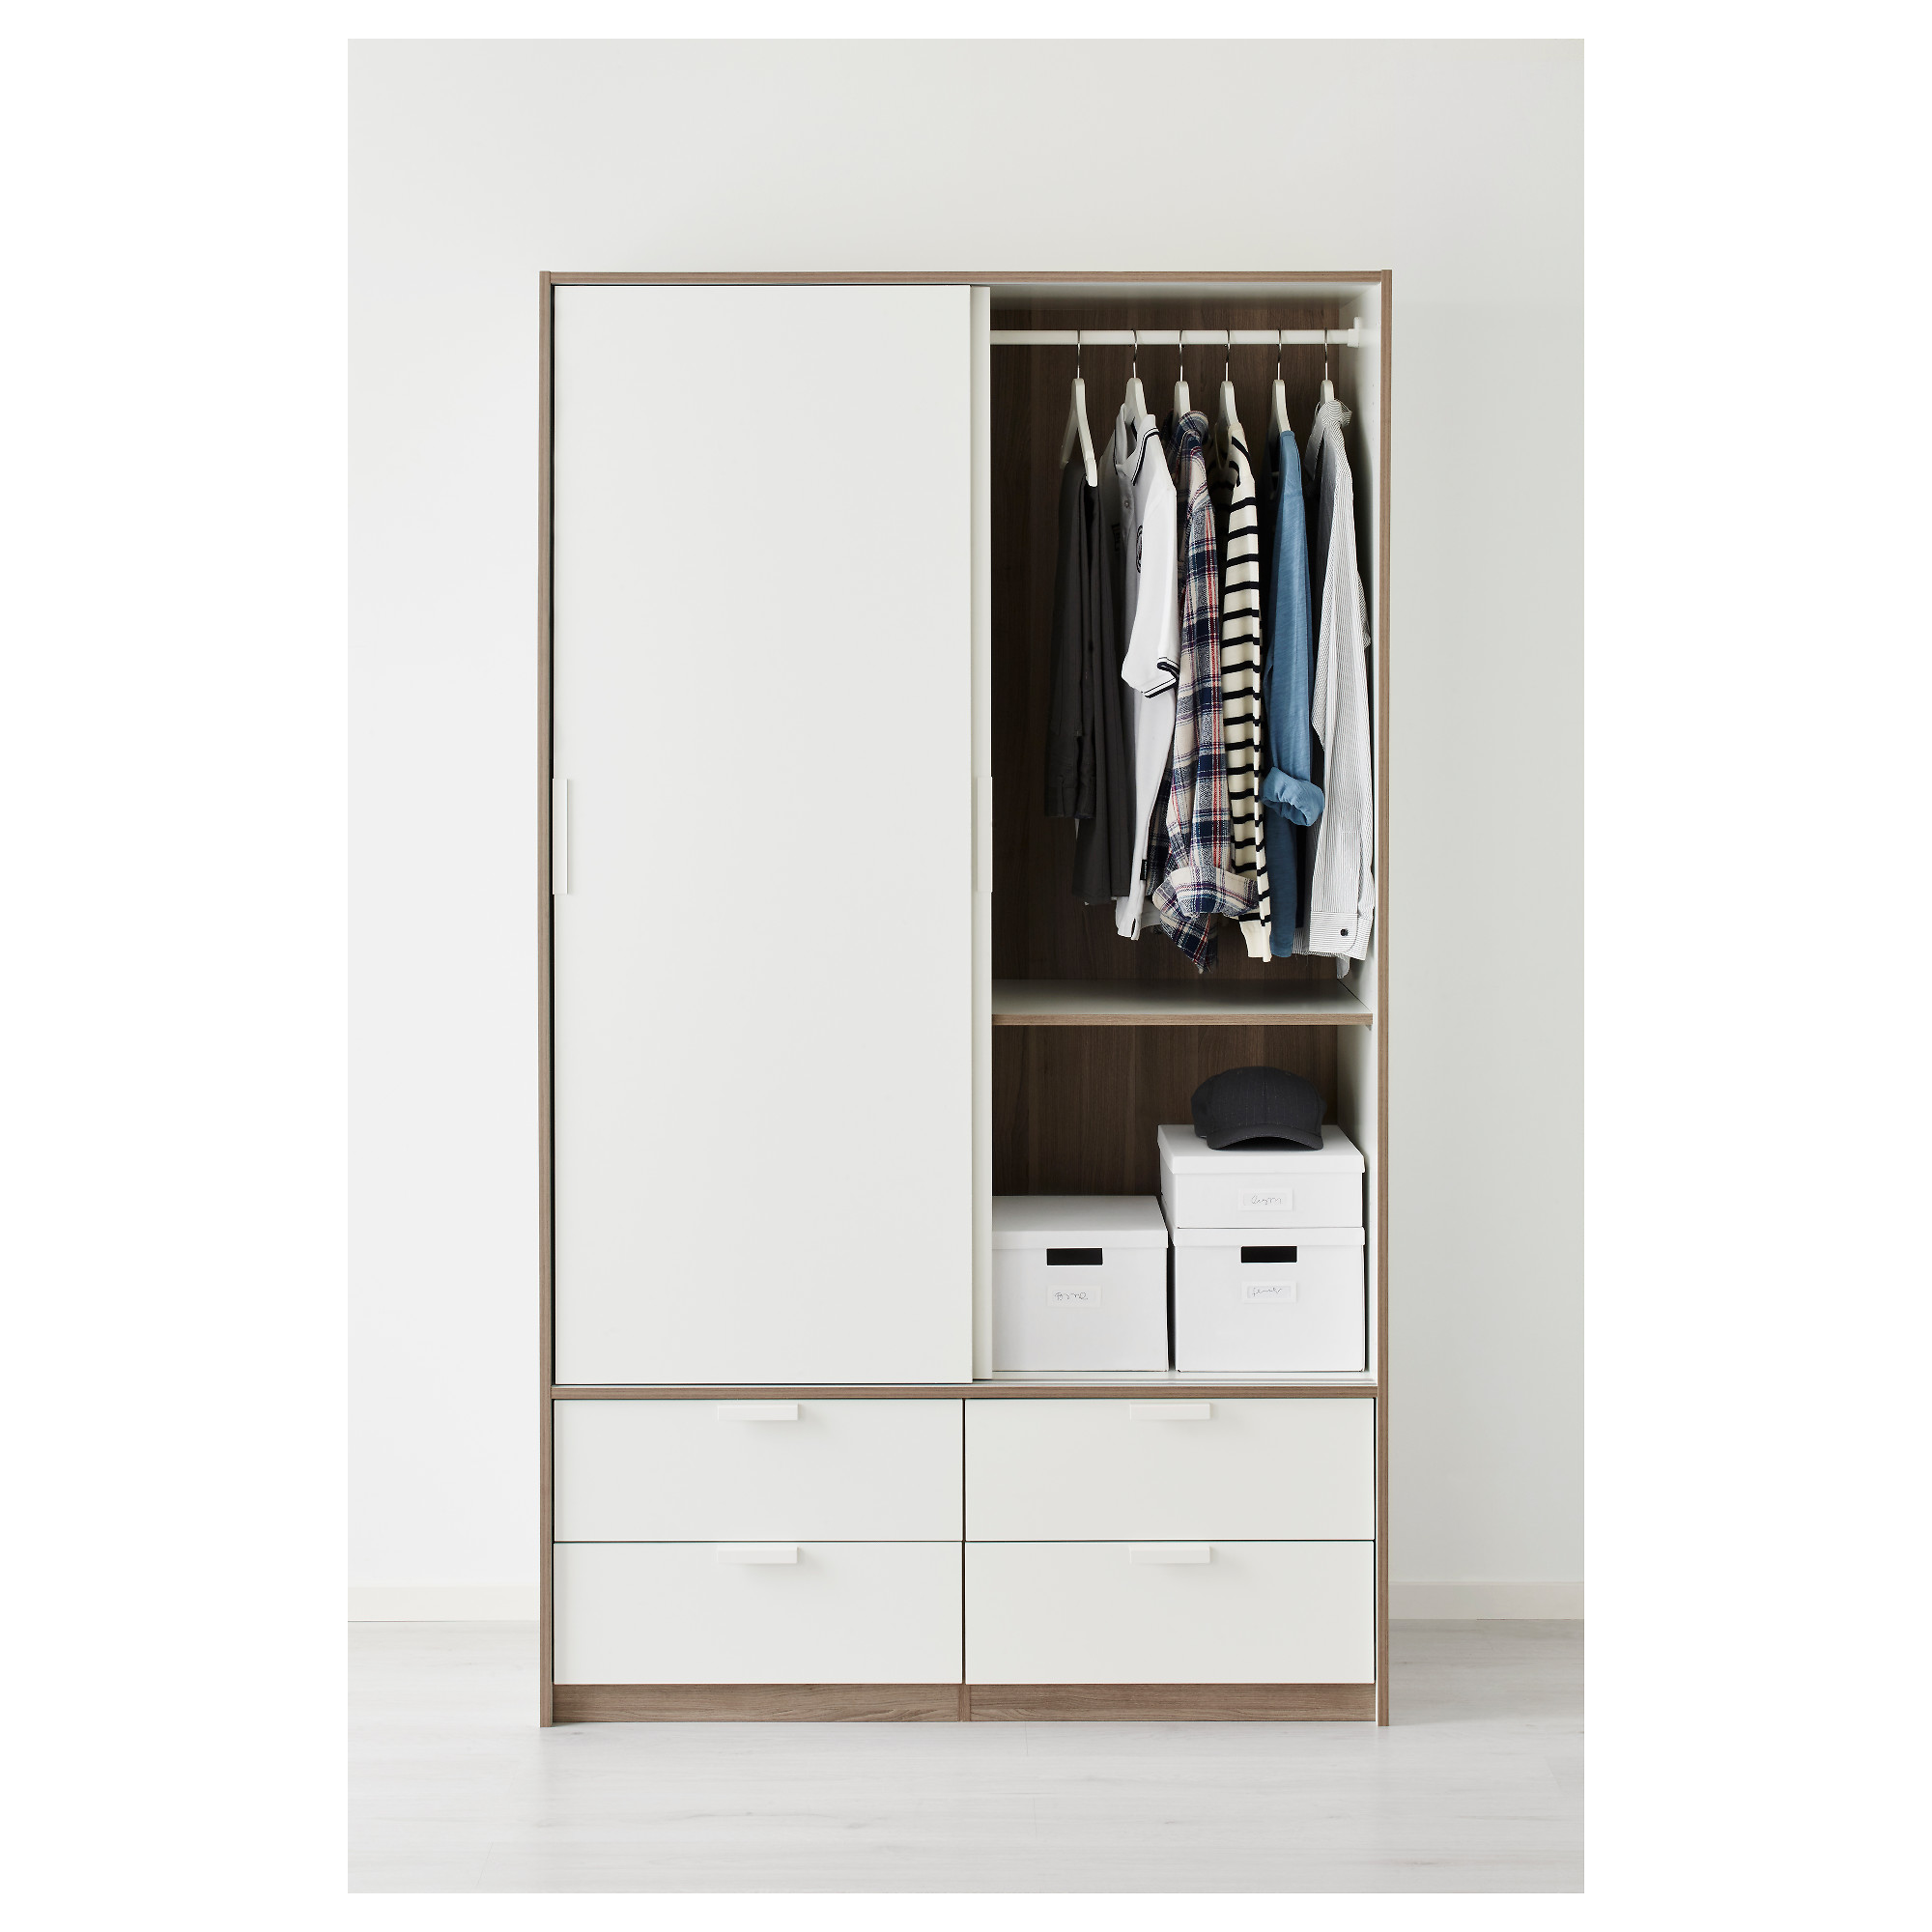 IKEA Latvia   Shop for Furniture, Lighting, Home Accessories & More